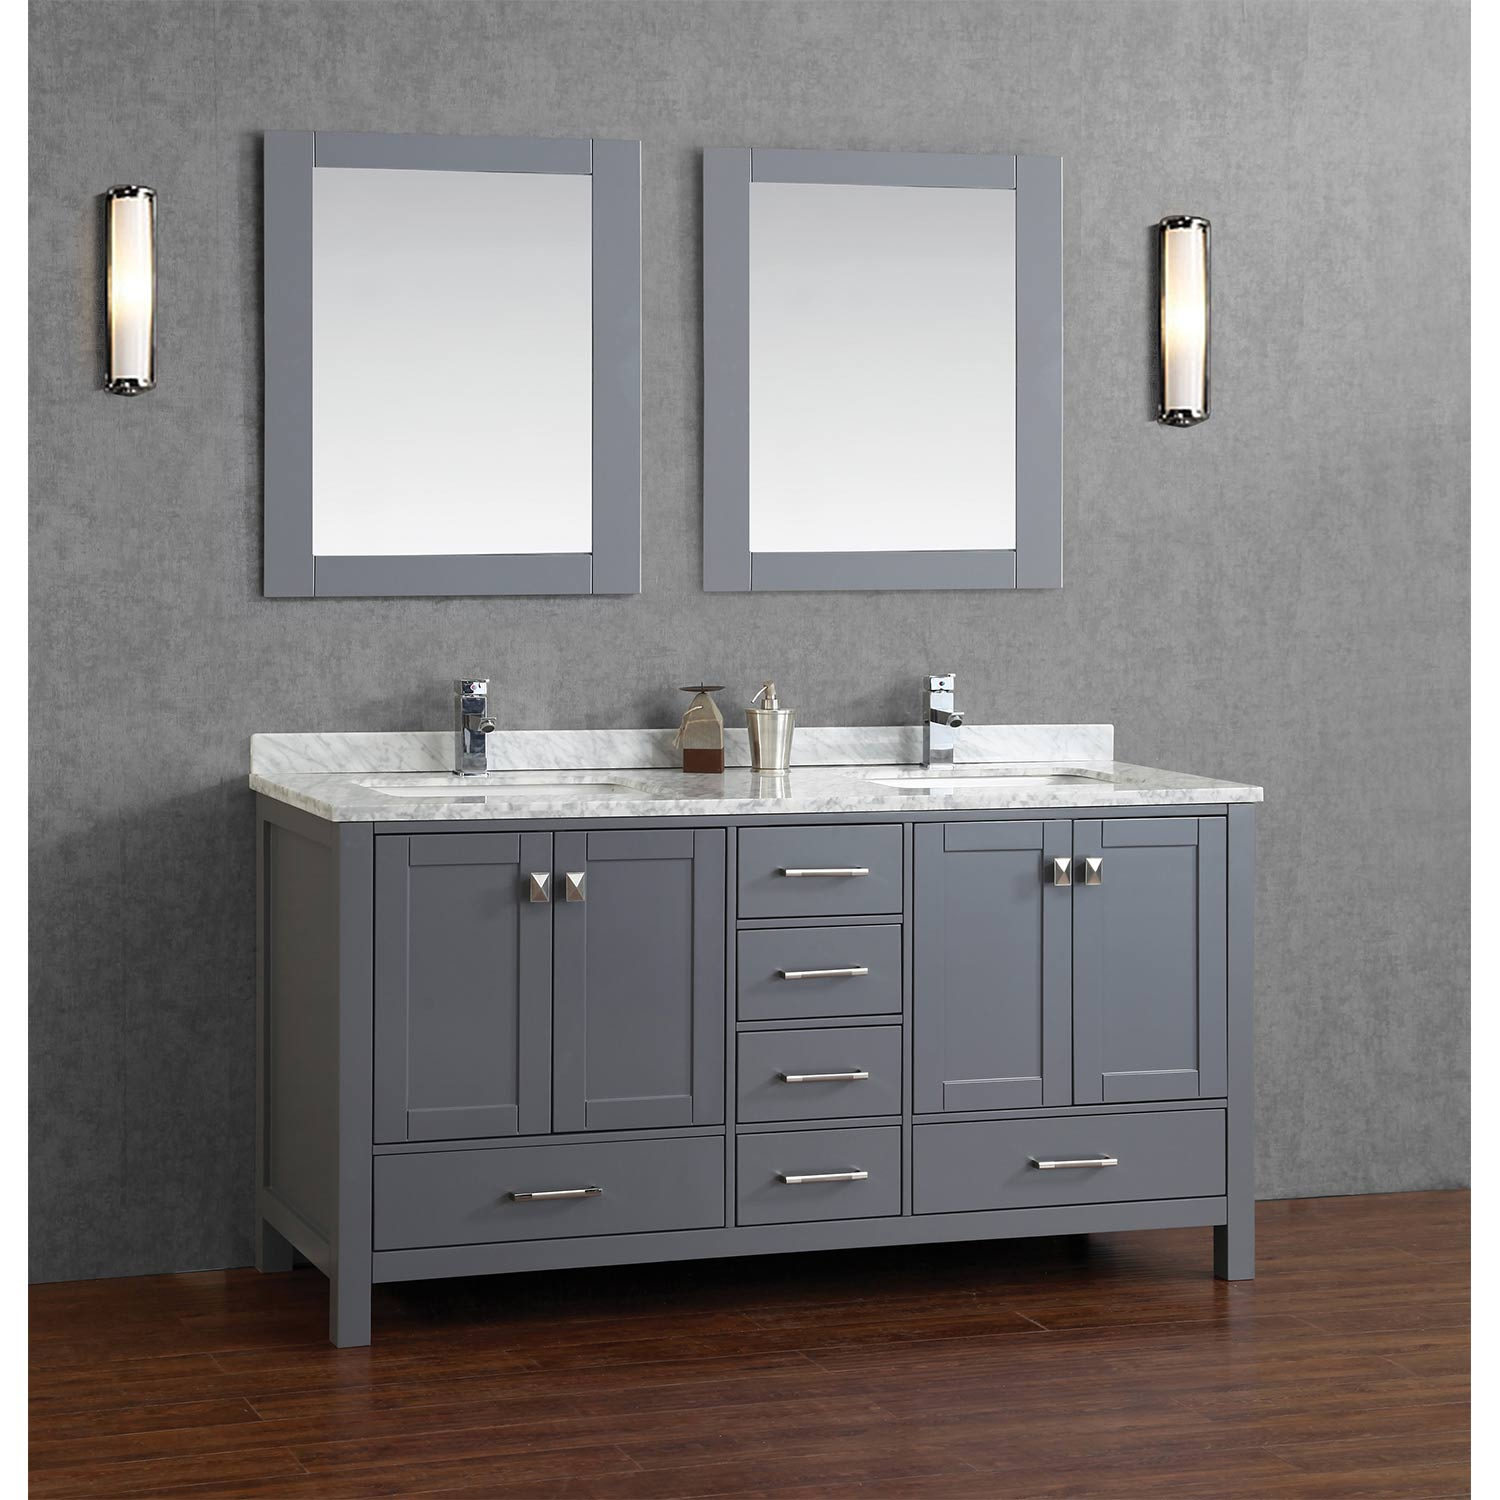 Vincent 72  Solid Wood Double Bathroom Vanity in Charcoal Grey HM 13001 WMSQ CG Buy Inch